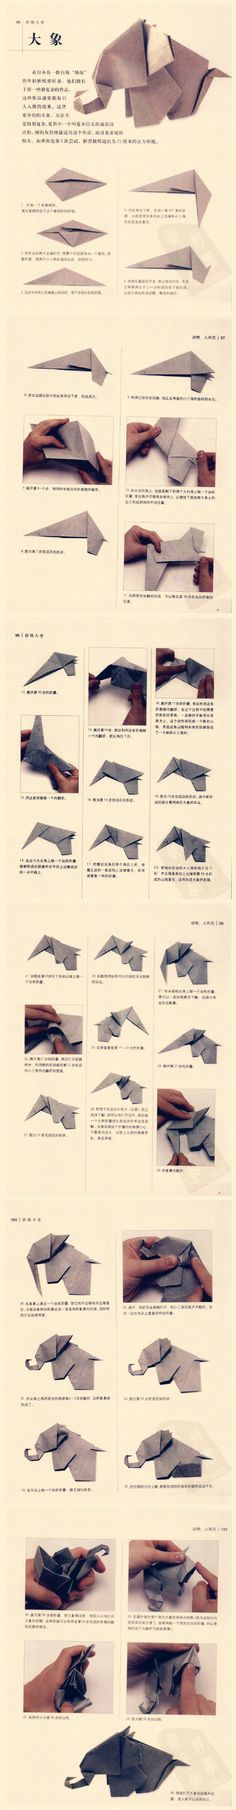 instructions for an Origami elephant